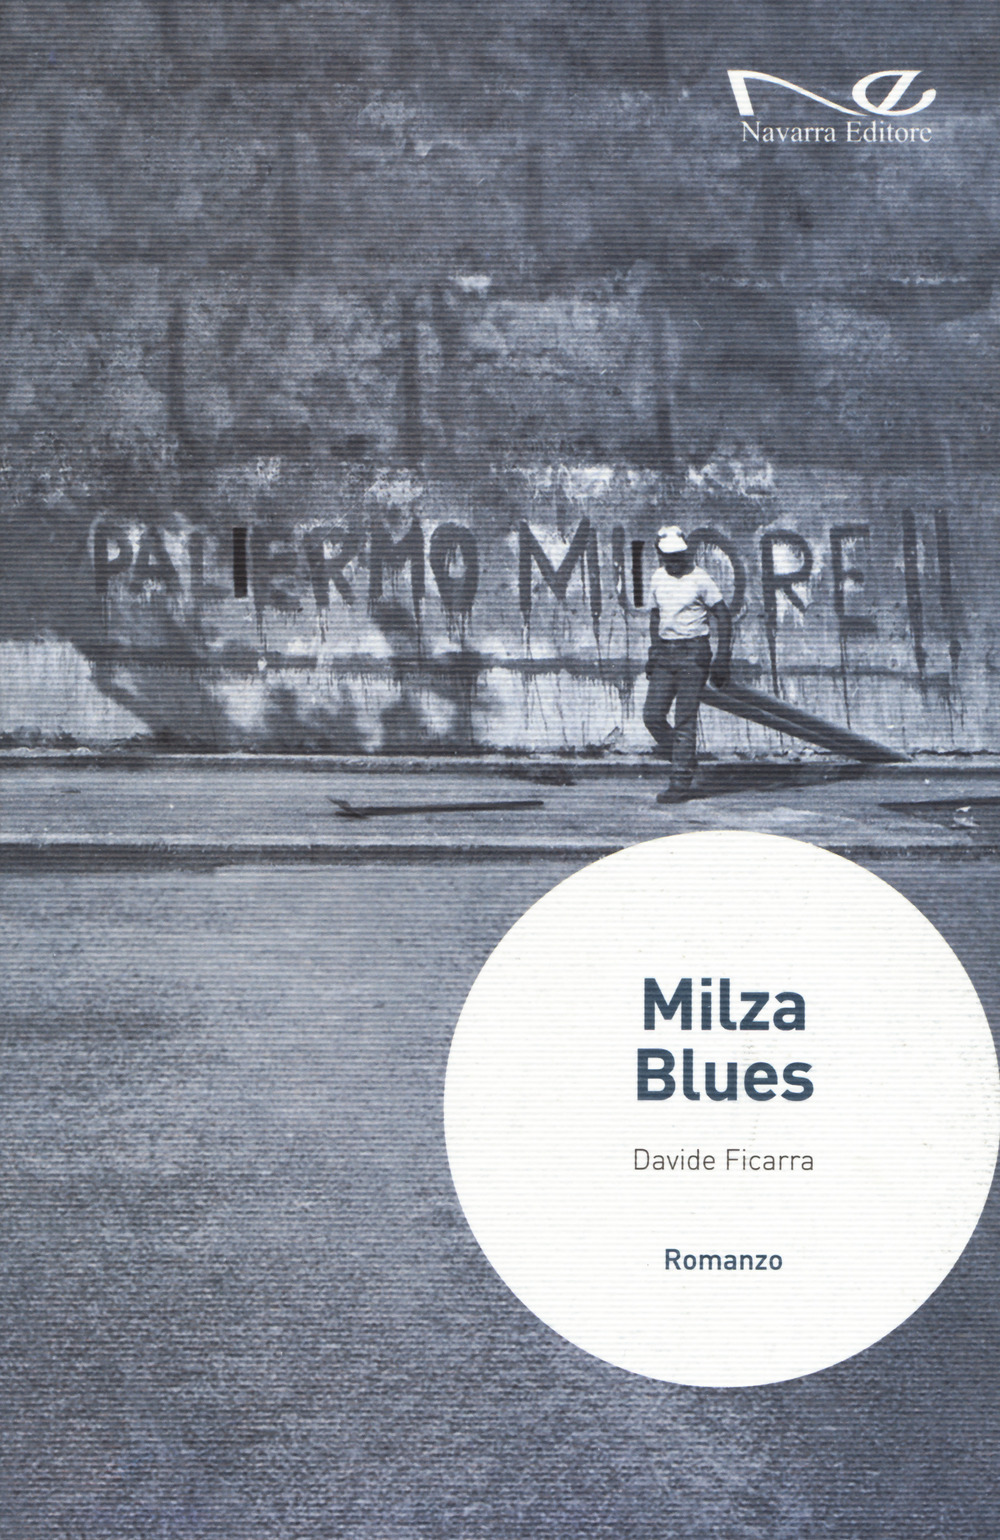 Milza blues